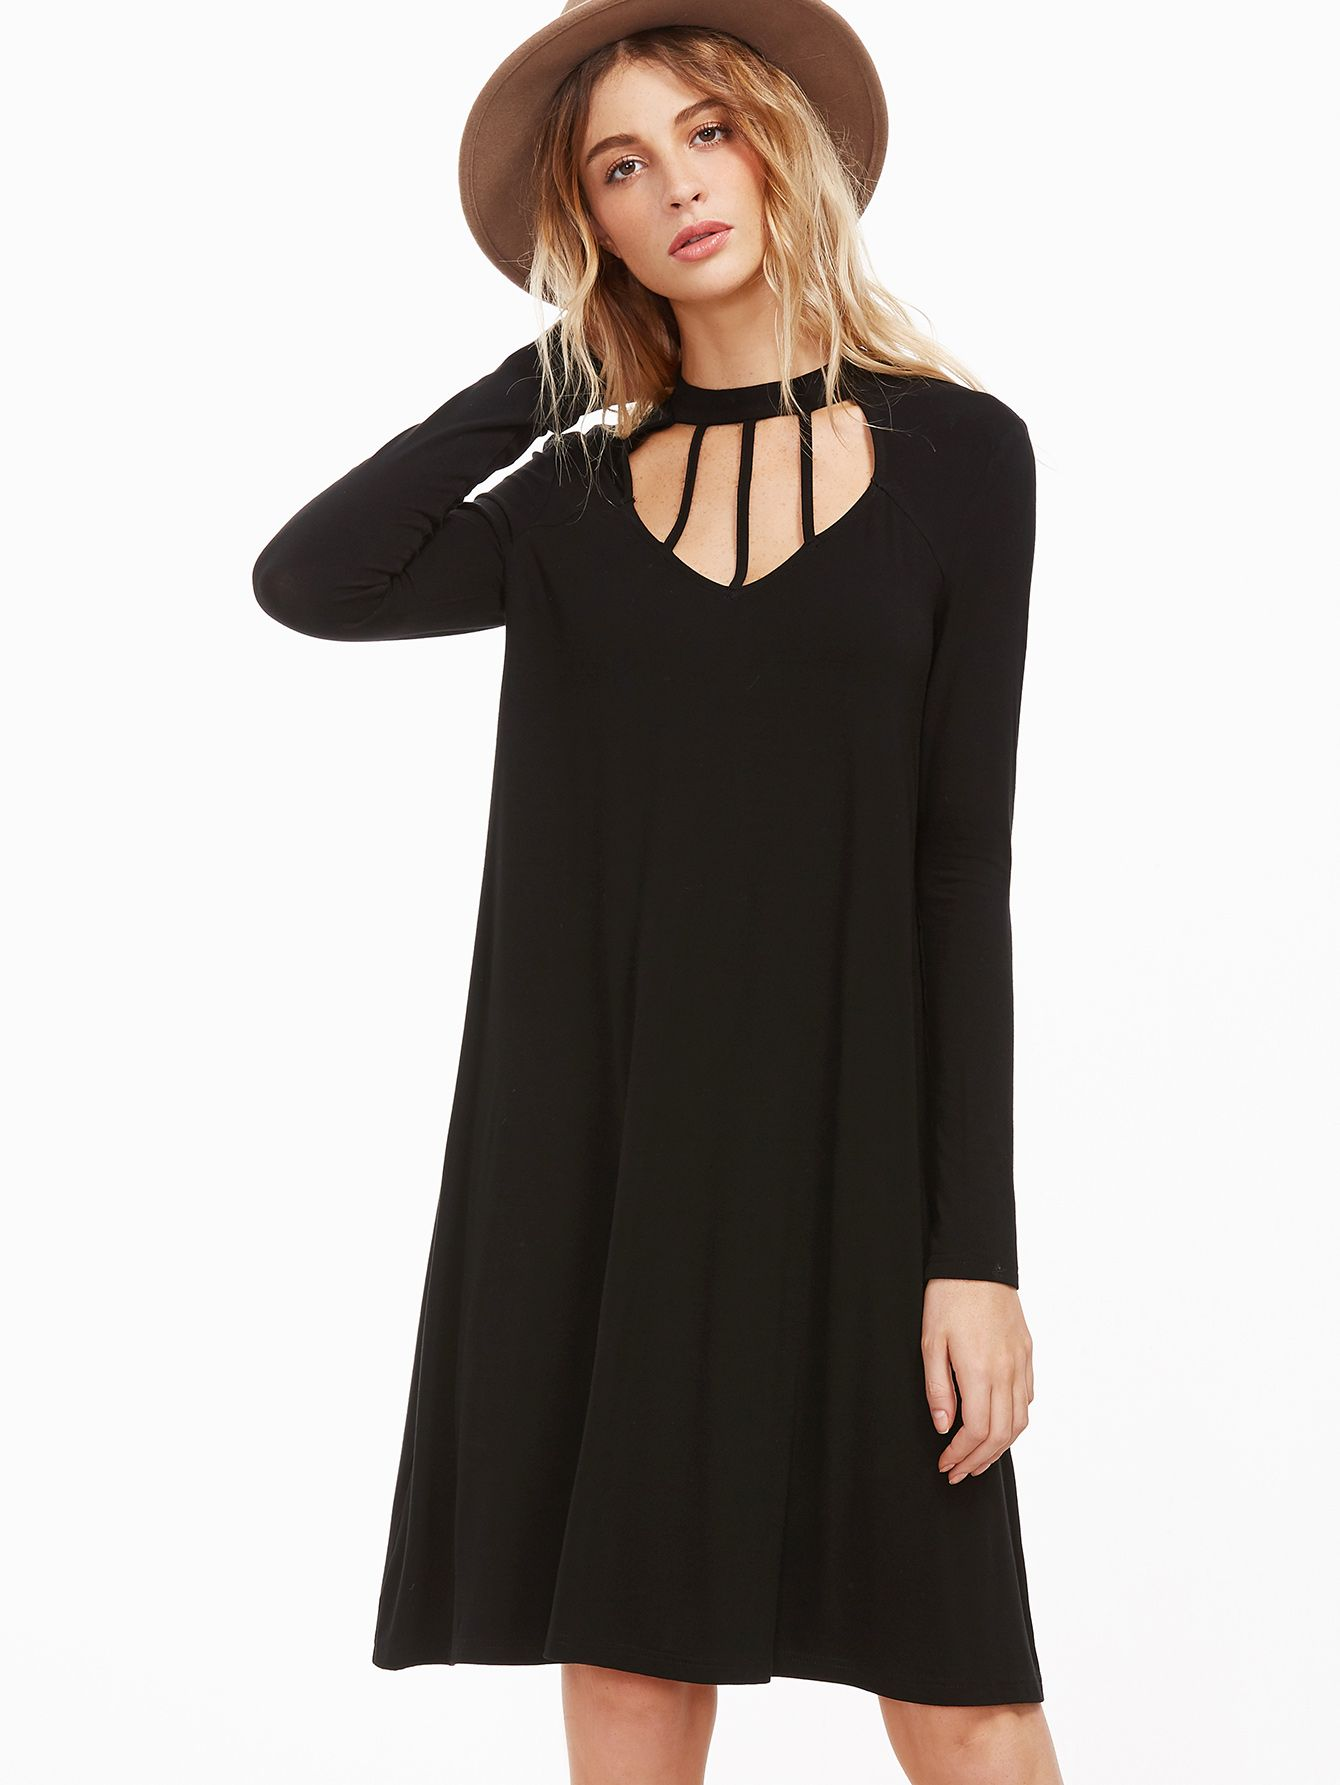 Buy it now. Black Cutout Strappy Neck Swing Dress. Black Casual Rayon Round Neck Long Sleeve A Line Knee Length Cut Out Plain Fabric is very stretchy Fall Tshirt Dresses. , vestidoinformal, casual, camiseta, playeros, informales, túnica, estilocamiseta, camisola, vestidodealgodón, vestidosdealgodón, verano, informal, playa, playero, capa, capas, vestidobabydoll, camisole, túnica, shift, pleat, pleated, drape, t-shape, daisy, foldedshoulder, summer, loosefit, tunictop, swing, day, offthesh...